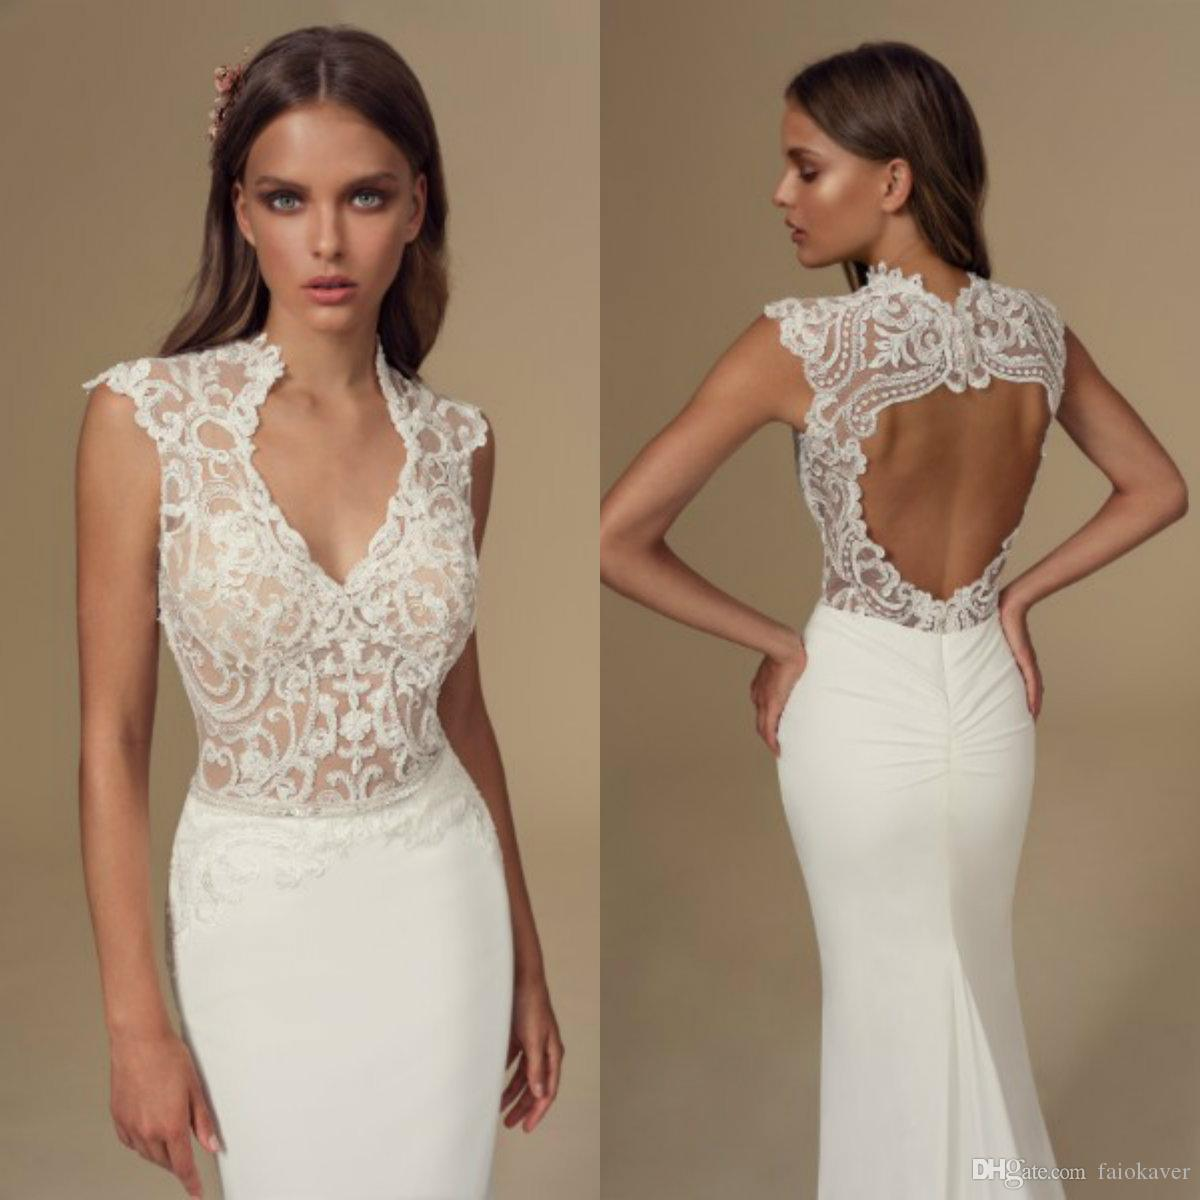 2020 Julie Vino High Collar Wedding Dresses Lace Appliqued Hollow Back Mermaid Wedding Dress Custom Made Country Style Bridal Gowns